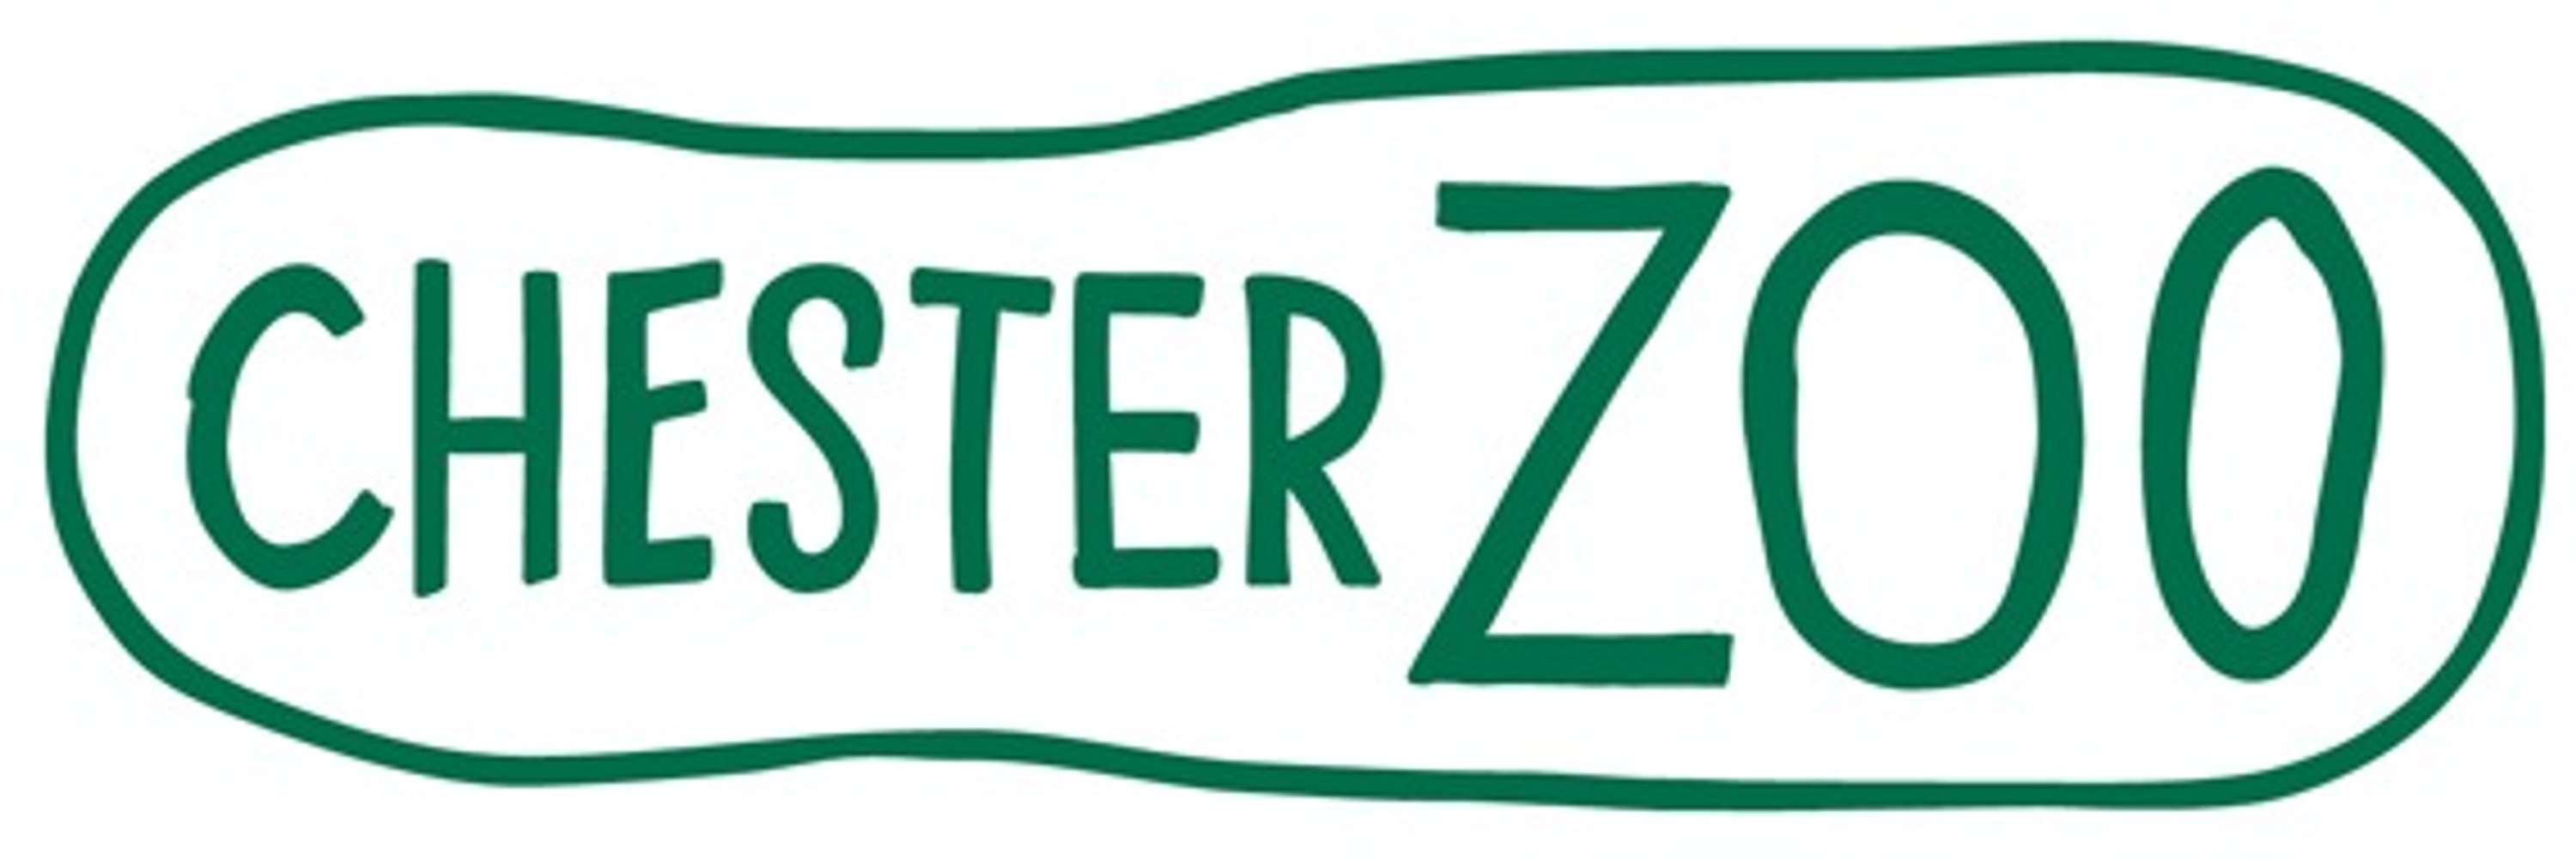 Image result for chester zoo banner